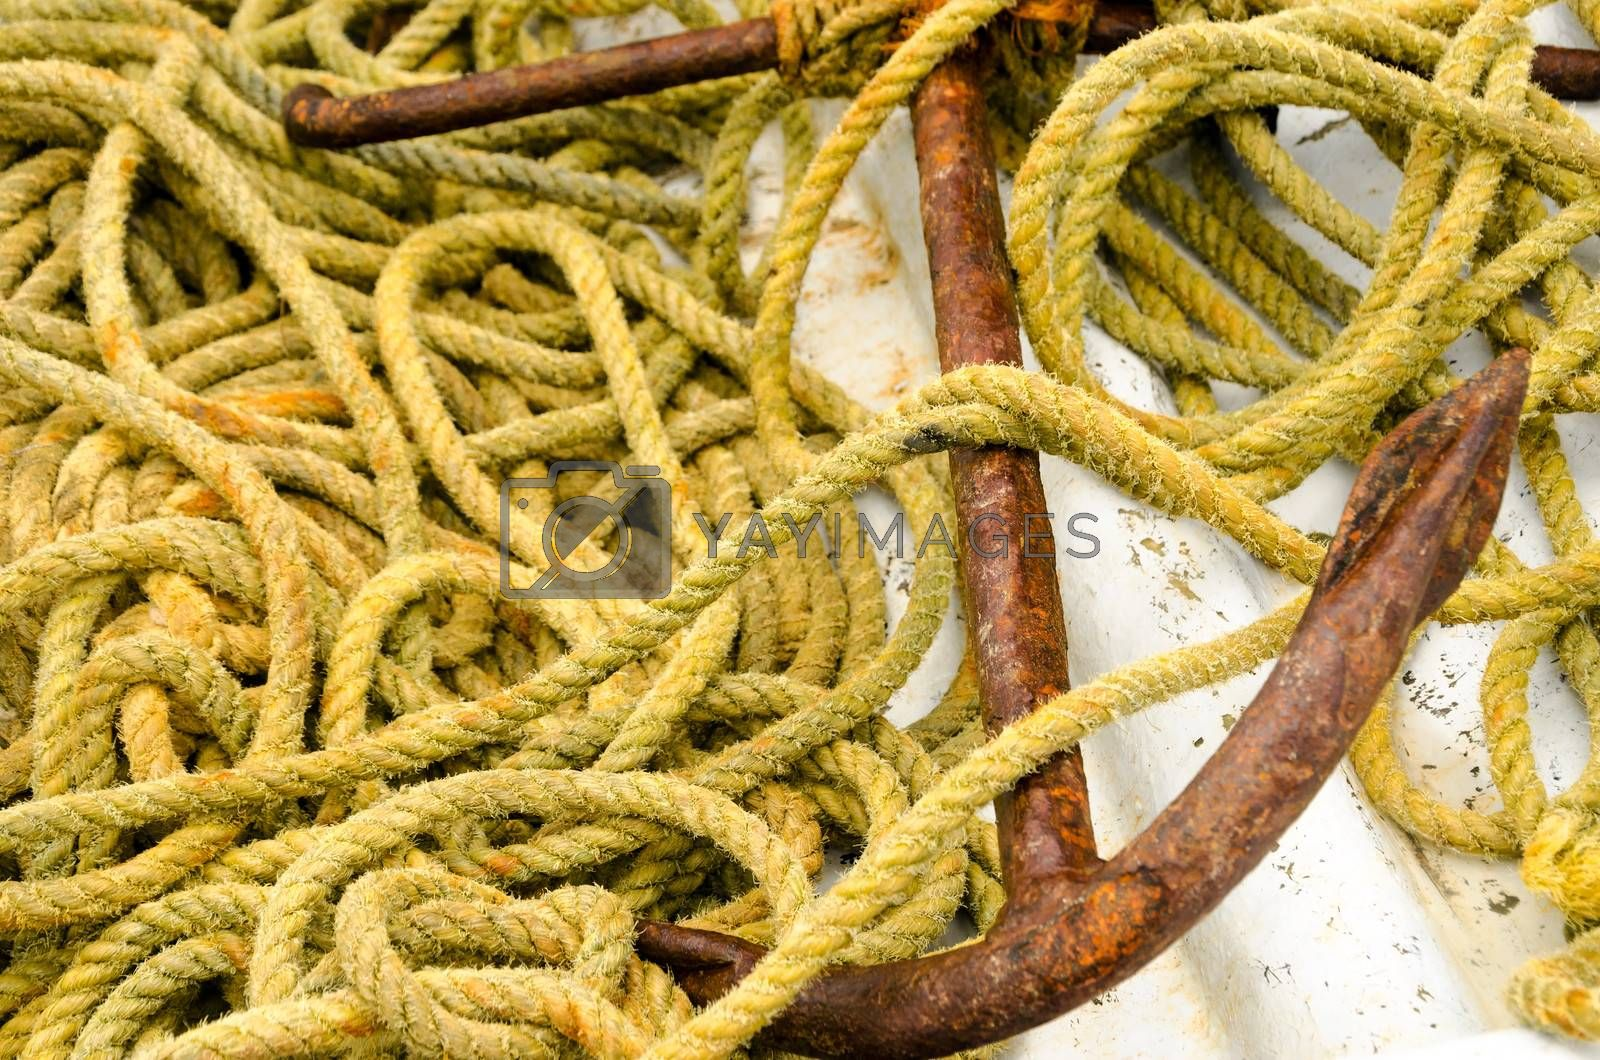 Old rusted anchor and old yellow rope